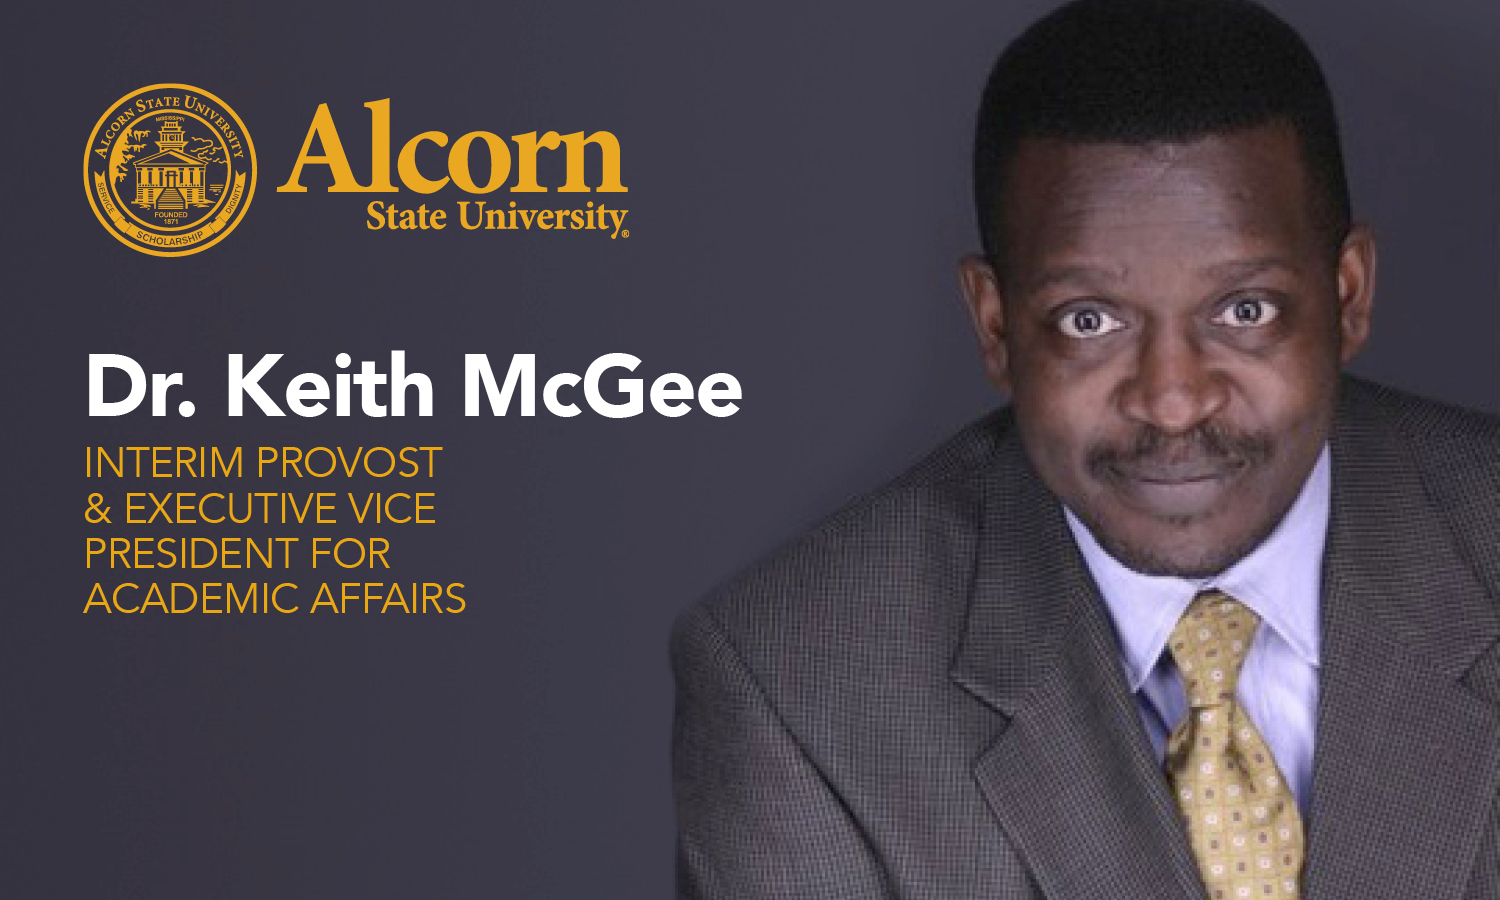 Dr. Keith McGee selected to serve as interim provost and executive vice president for Academic Affairs